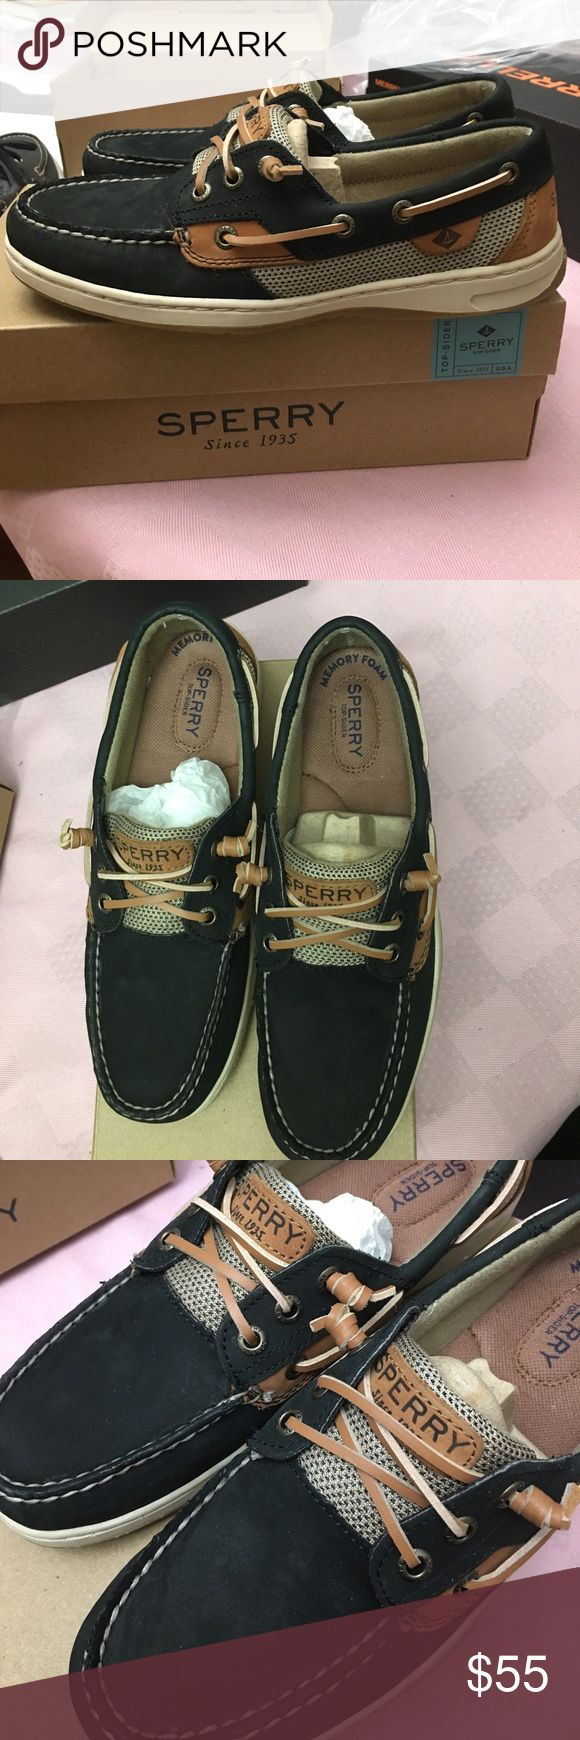 Womens sperry top sider shoes This is brand new with box . This shoes is memory foam and is very comfy. Sperry Top-Sider Shoes Flats & Loafers